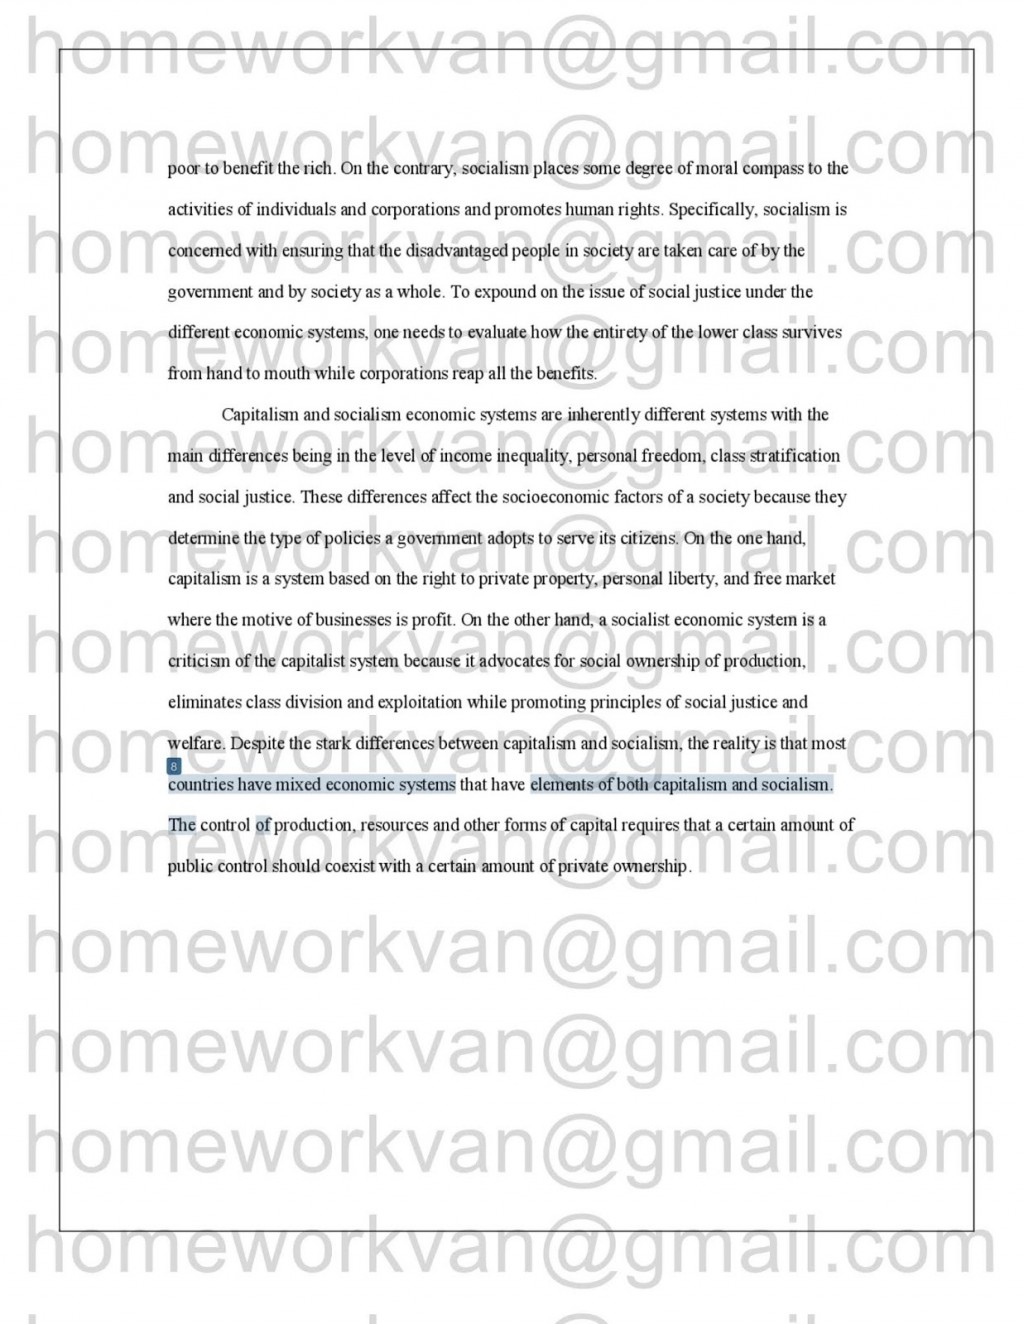 005 Compare2band2bcontrast2bessay2beconomic2bsystems2b252812529 Essay Example Breathtaking Capitalism Topics Question Pdf Large